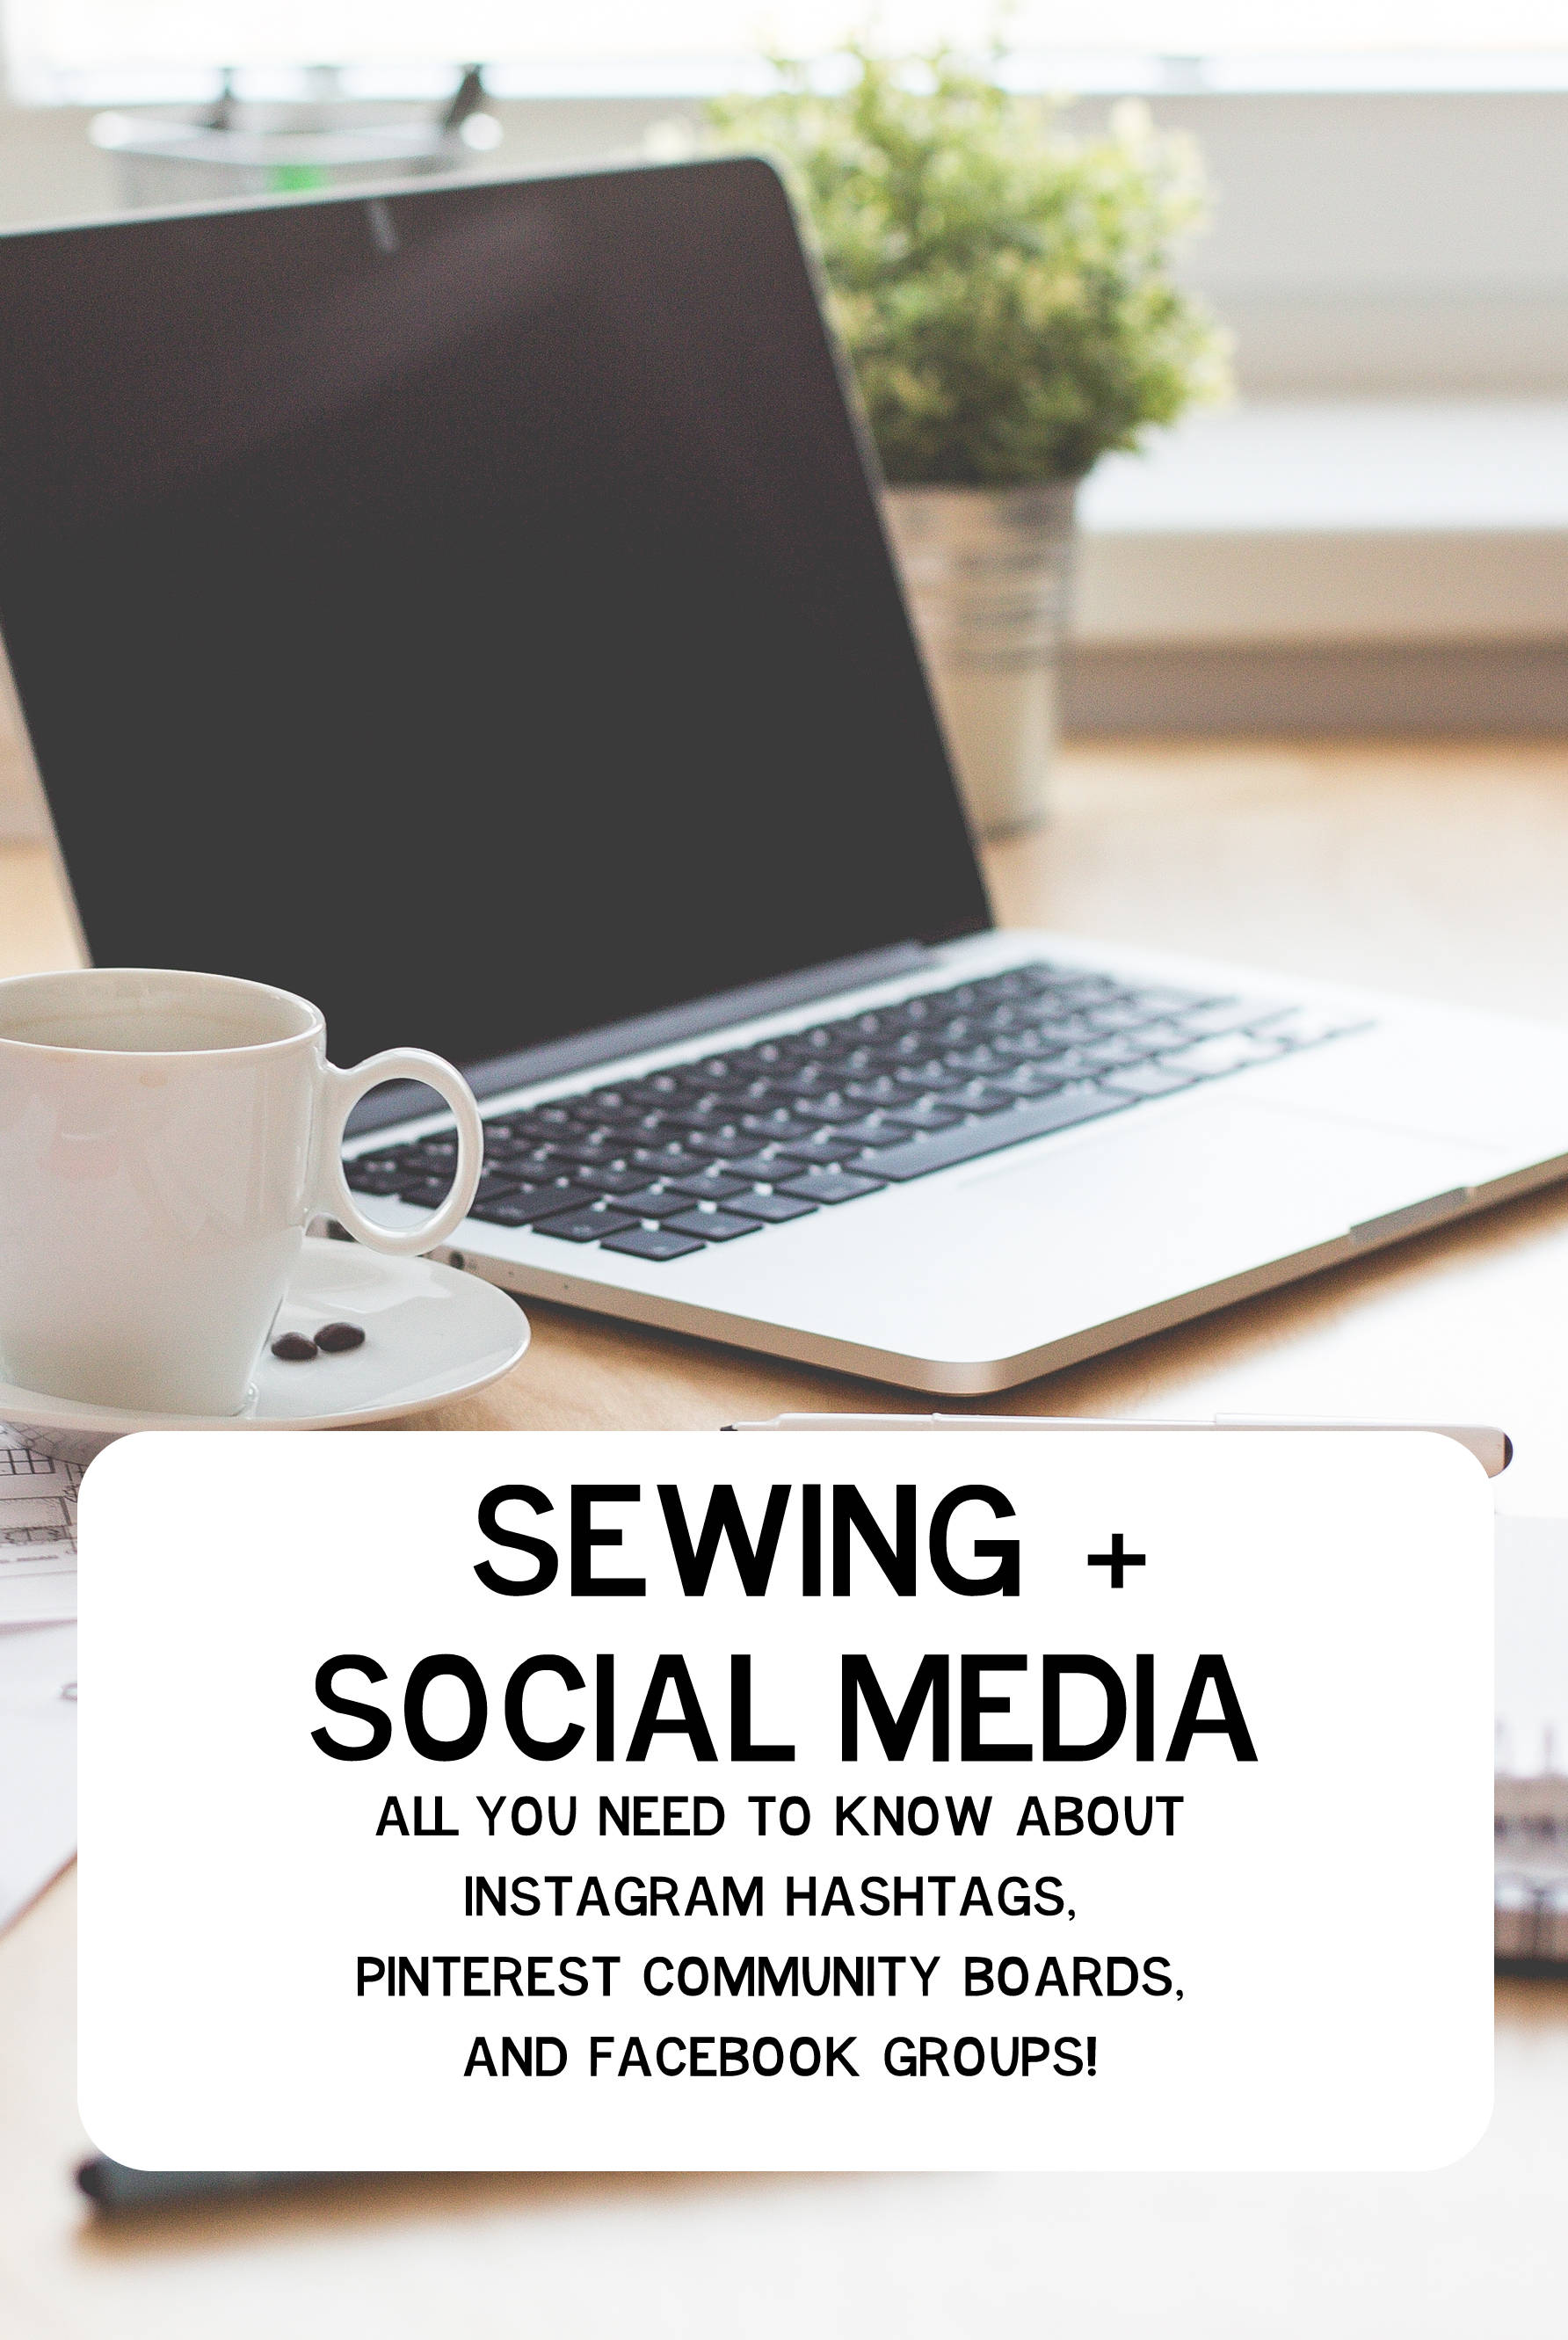 if you're a sewing or diy blogger, check out this post for Instagram Hashtags, pinterest group boards, and facebook groups for the industry. Even if you're not a blogger, this is a great way to get to know people in the sewing community!